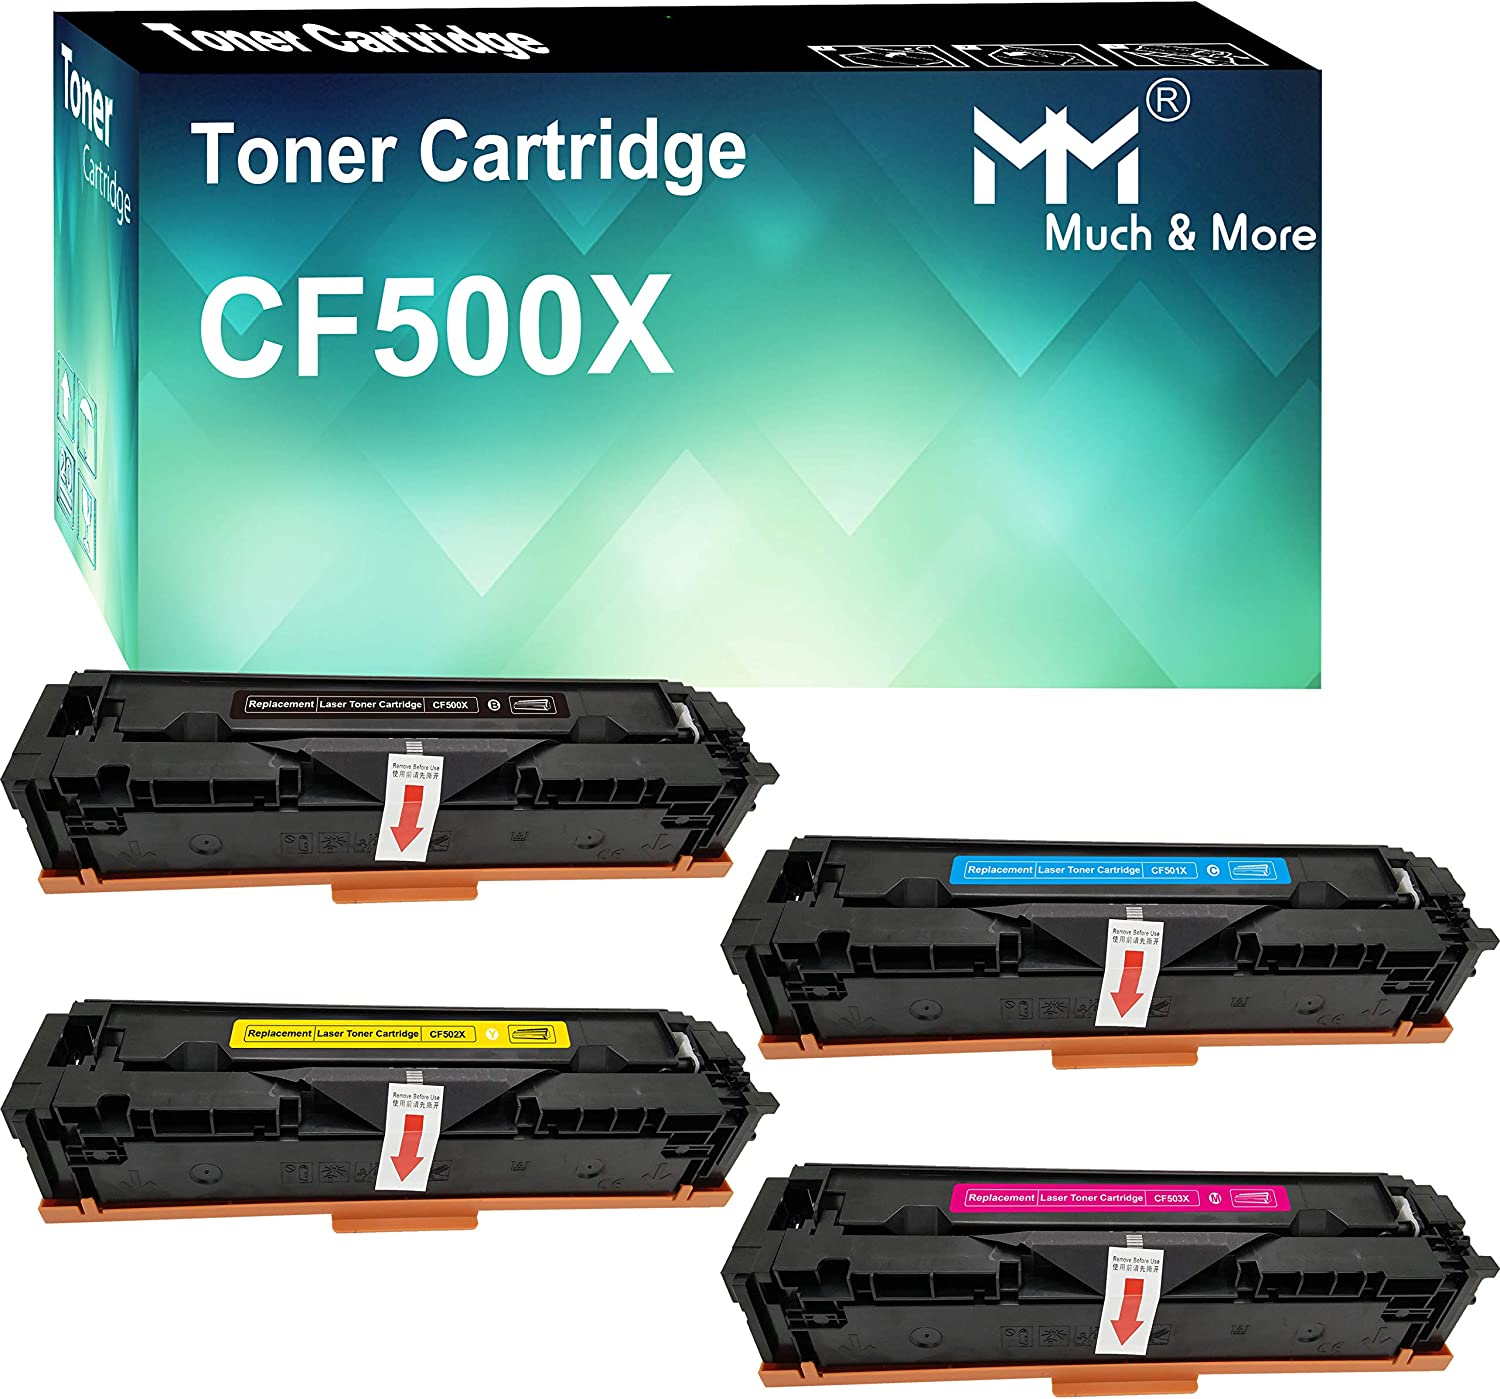 Compatible (4-Pack, High Yield, K+C+M+Y) CF501X CF502X CF503X 202X Toner Cartridge CF500X Used for HP Laserjet Pro M254DW 254NW M280NW M281FDW M281FDN Printer, Sold by MuchMore